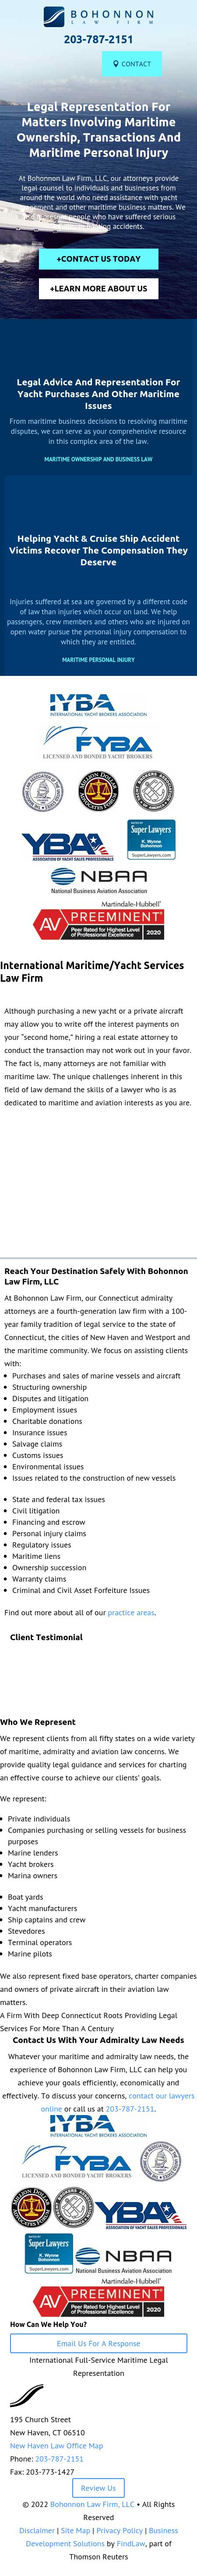 Bohonnon Law Firm, LLC - New Haven CT Lawyers